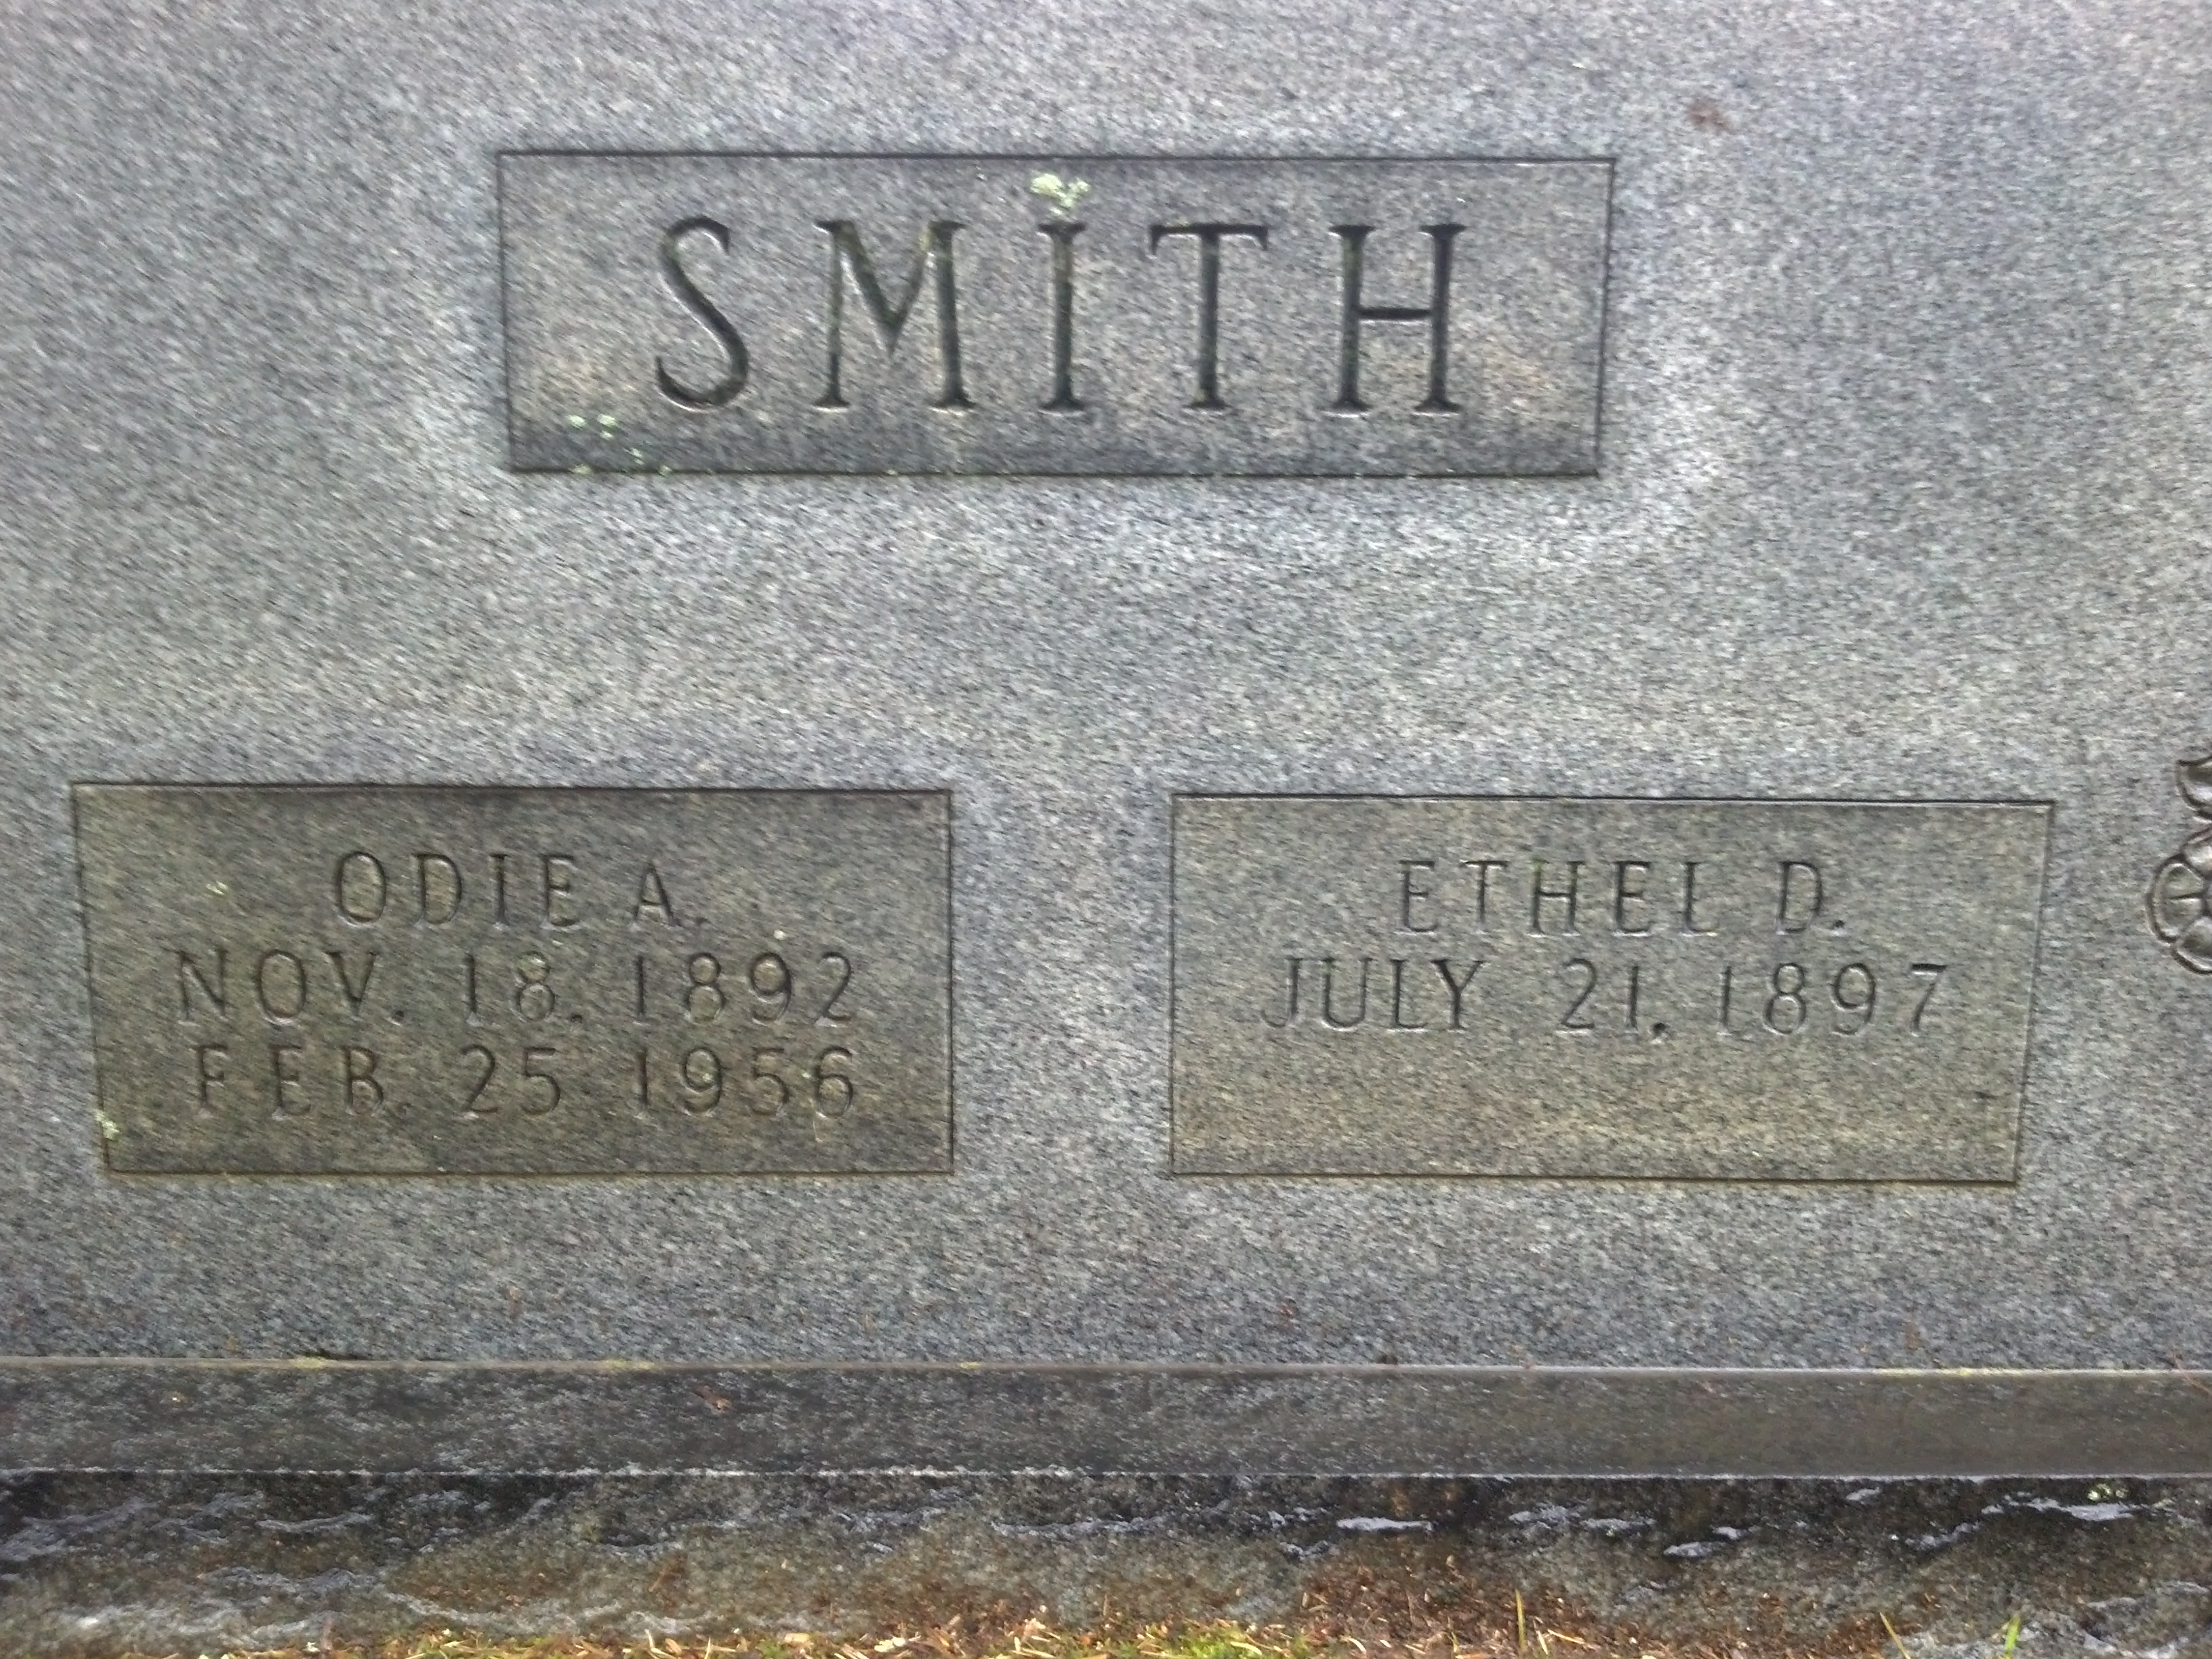 Ethel <i>Drane</i> Smith